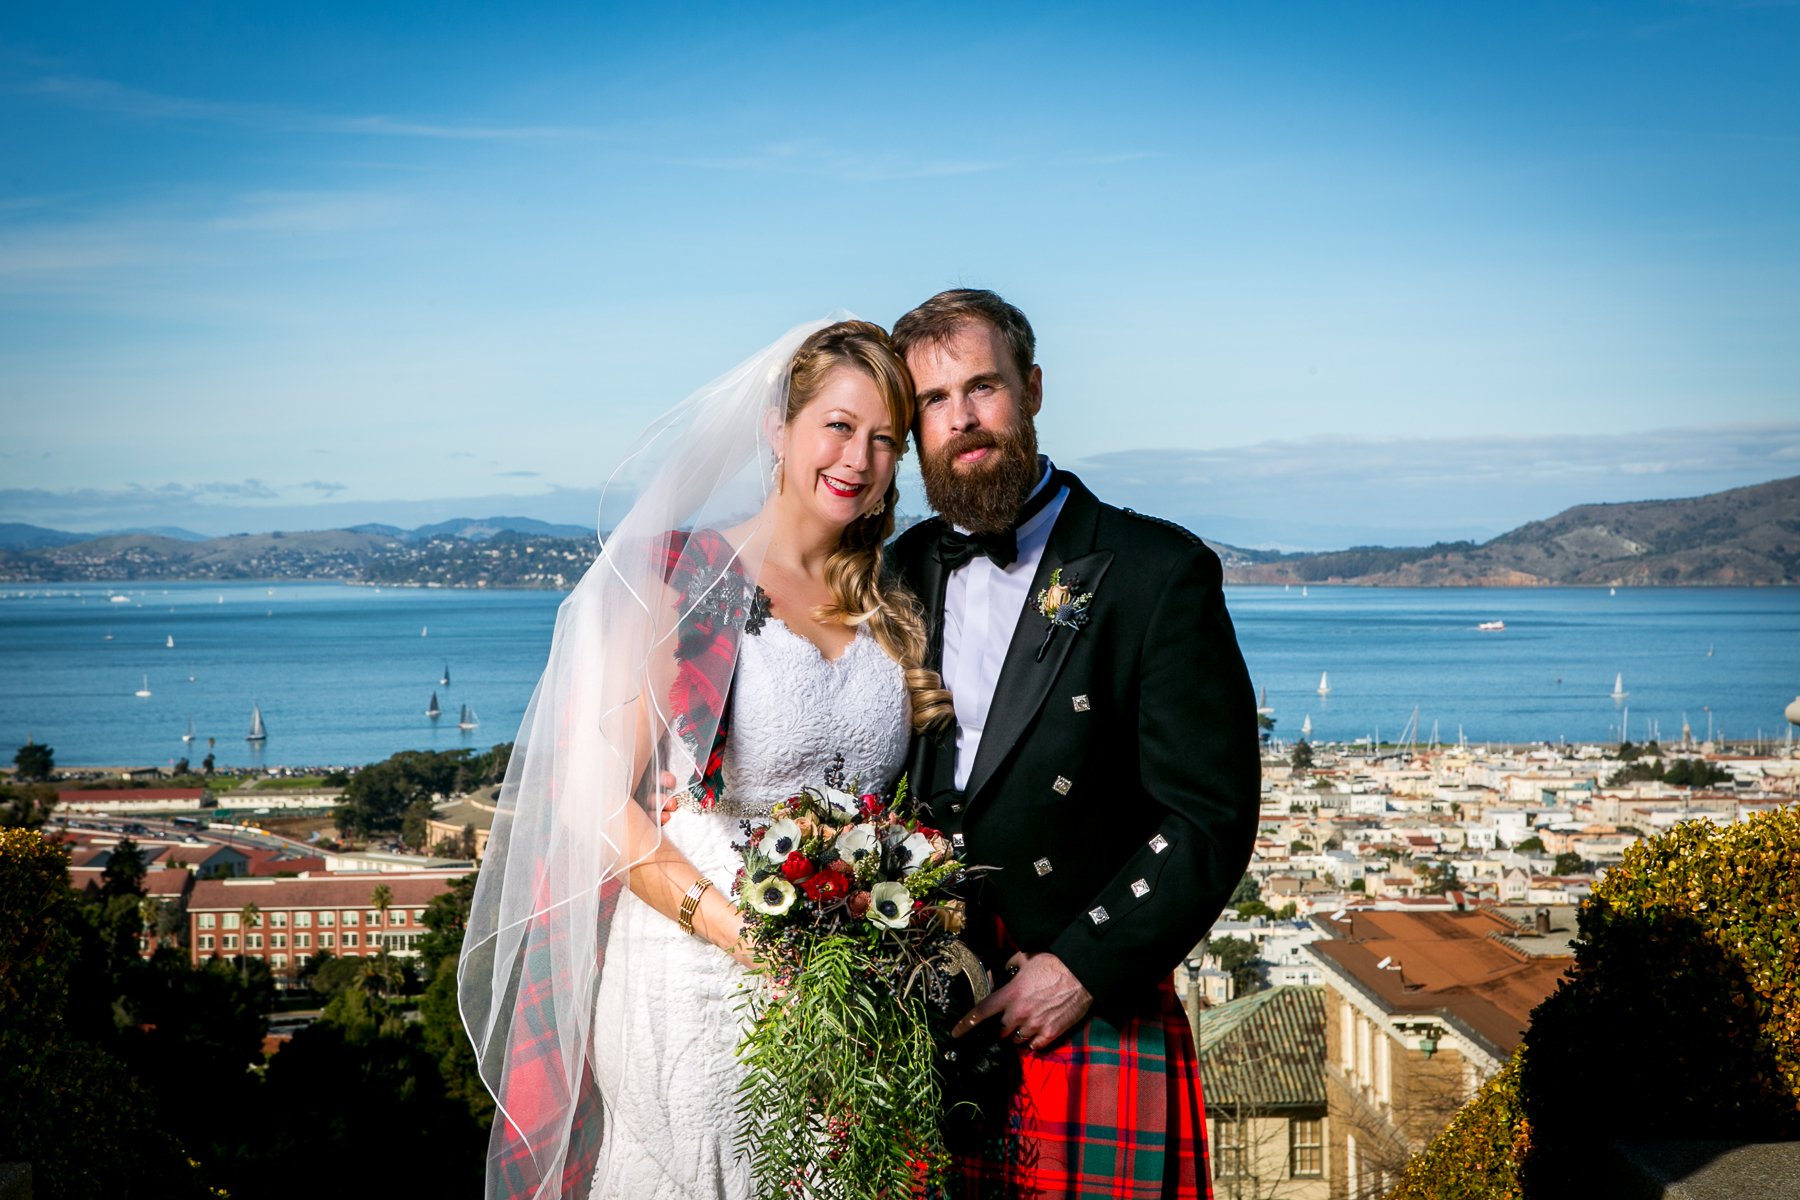 standard bride and groom portrait with view of bay wedding photographer